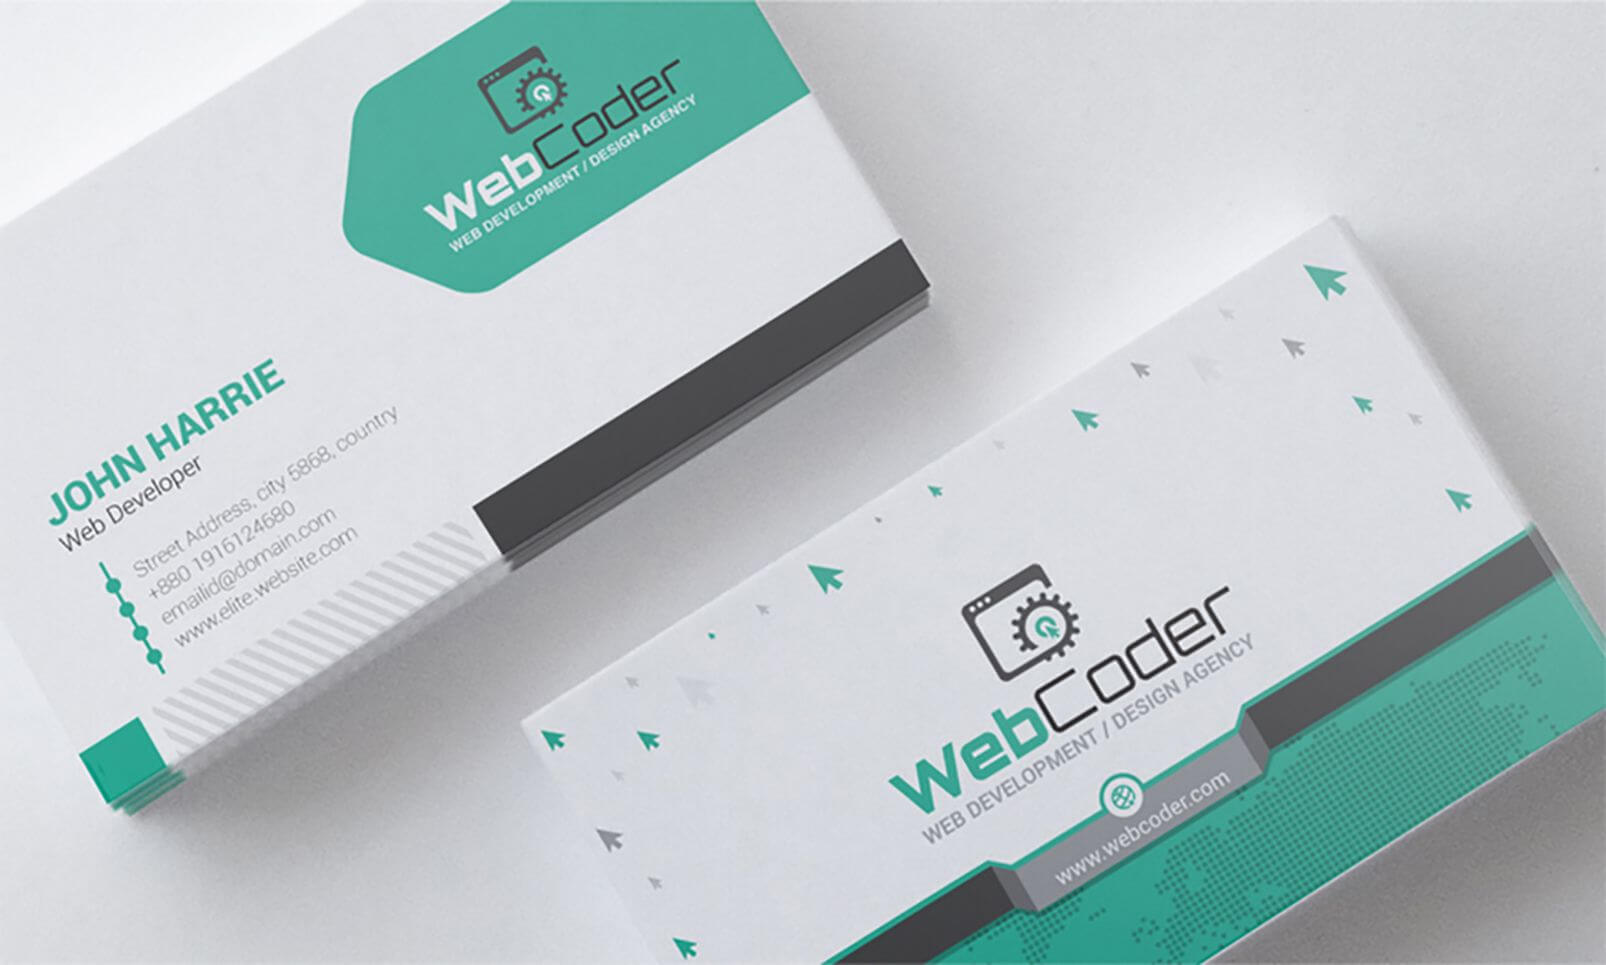 Business Card Design For Web Design And Developer Psd Pertaining To Web Design Business Cards Templates